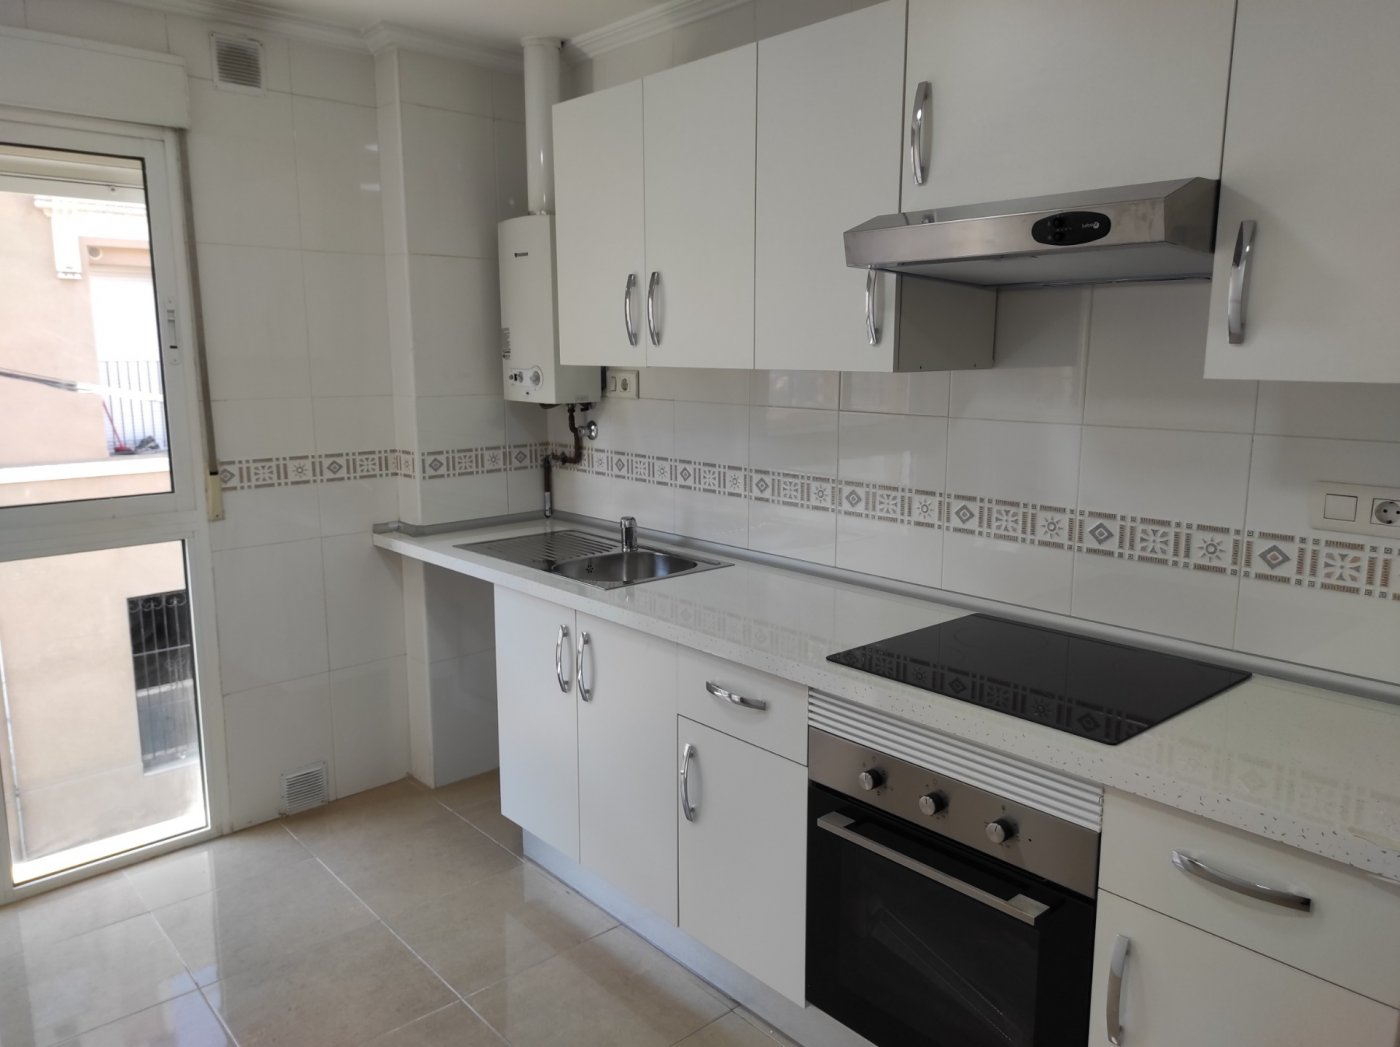 Image 4 Flat ref 2680 for rent in El Palmar Spain - Quality Homes Costa Cálida